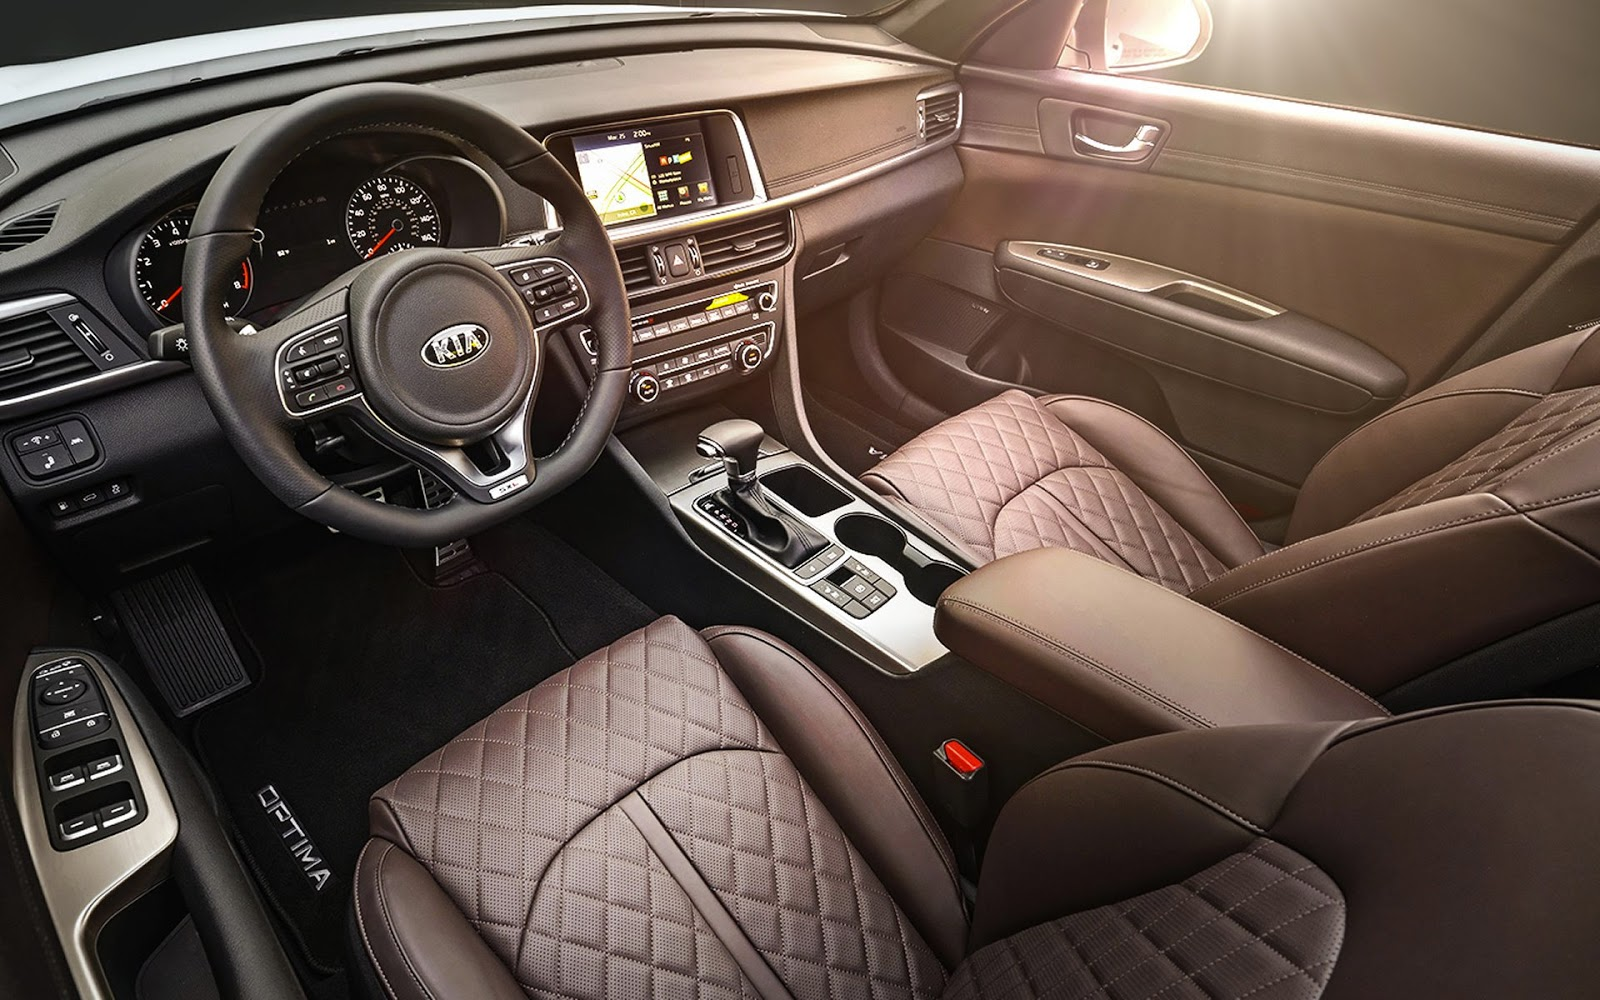 The 2016 Optima S Roomier Interior Means Its Got More E Than Benchmark Models Like Honda Accord And Toyota Camry